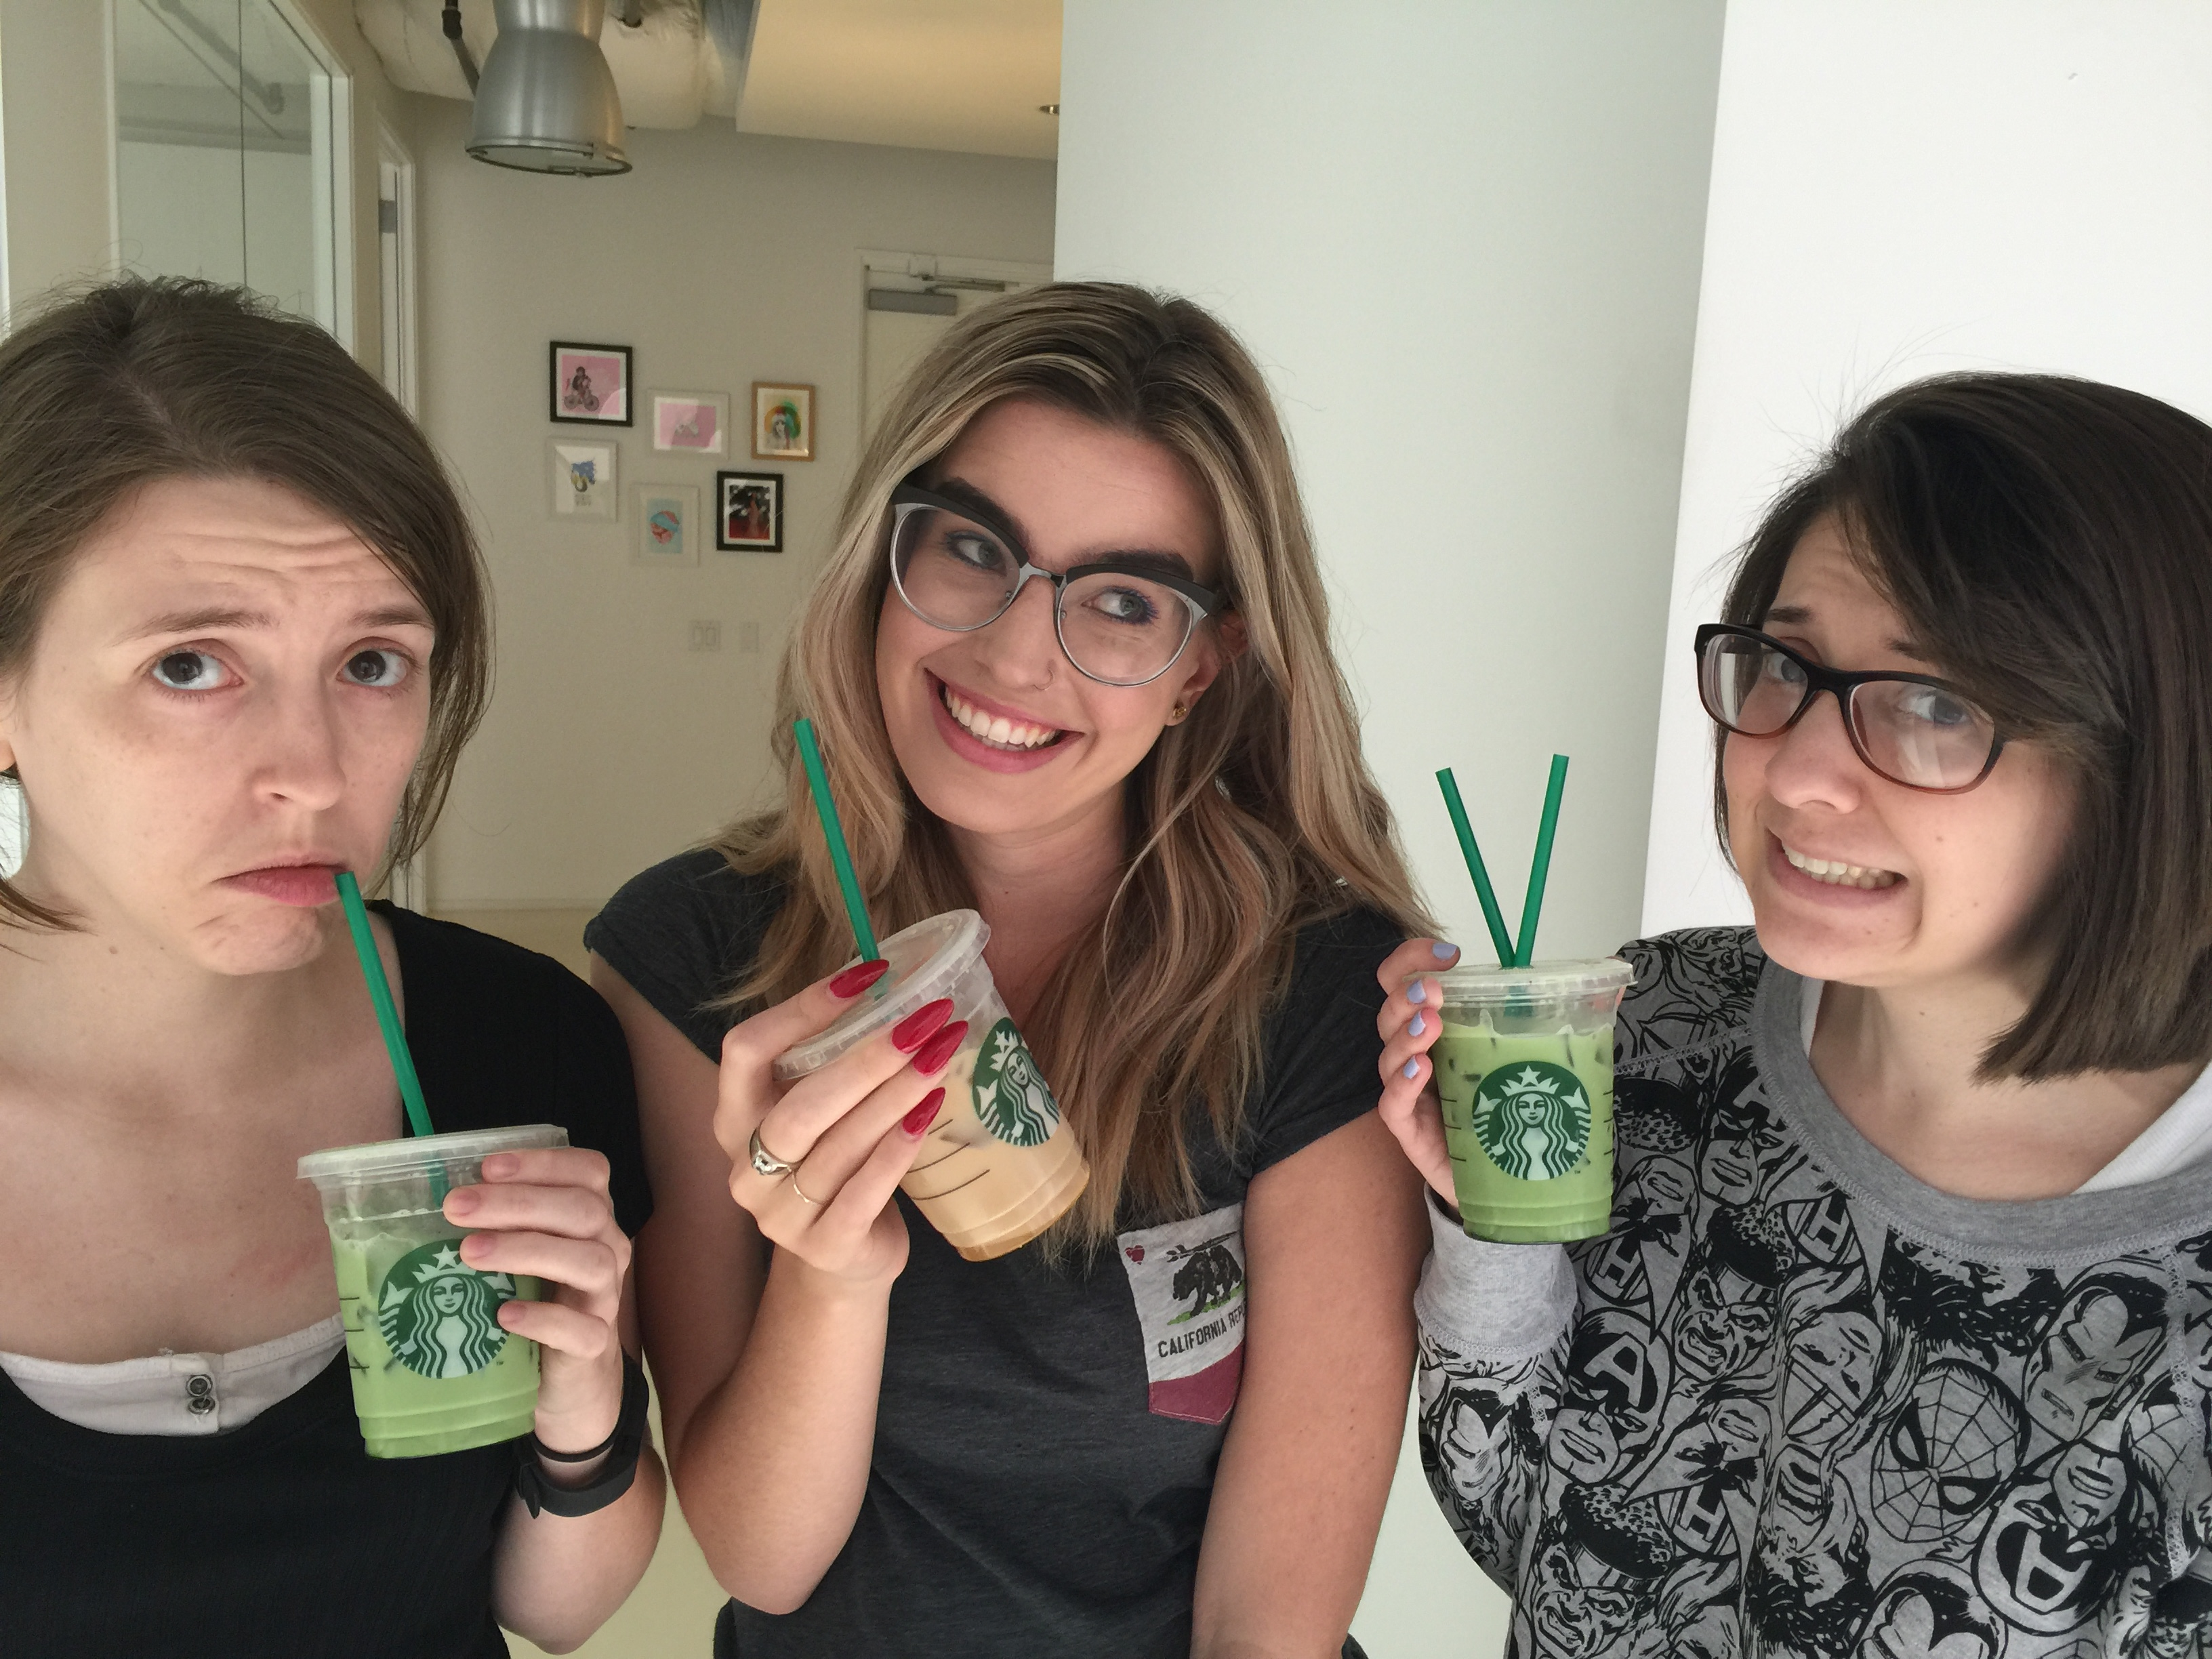 We tried Starbucks' new Smoked Butterscotch and Citrus Green Tea lattes so you don't have to